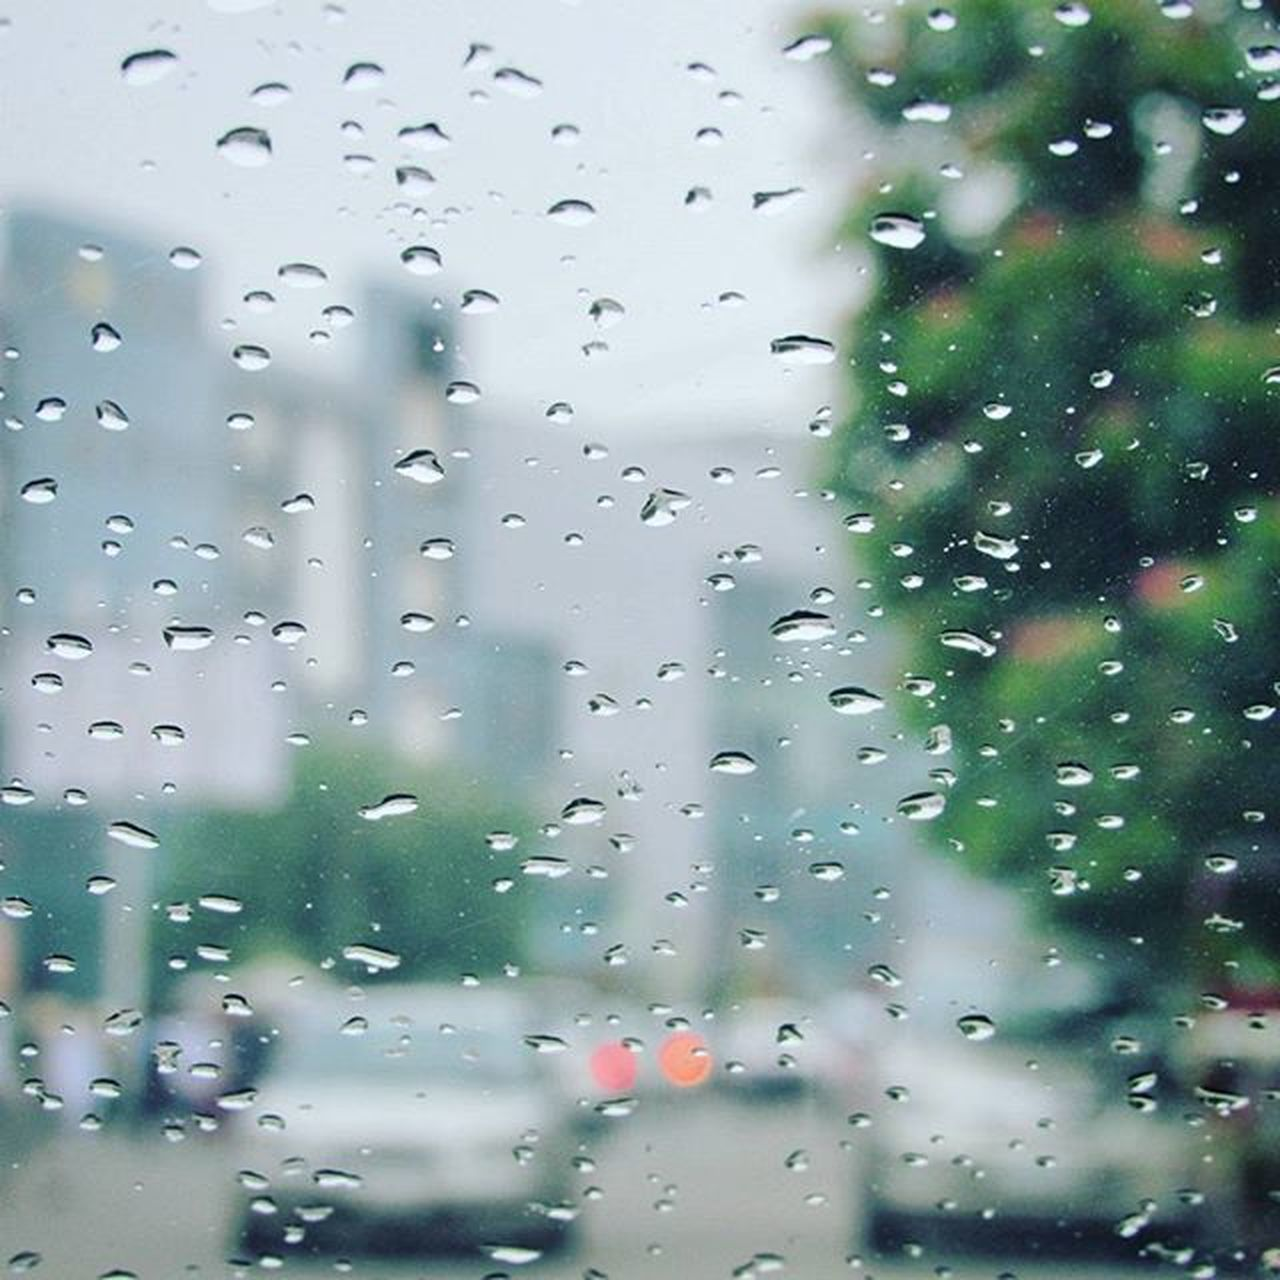 drop, window, glass - material, wet, rain, water, no people, raindrop, focus on foreground, indoors, close-up, full frame, nature, day, backgrounds, sky, freshness